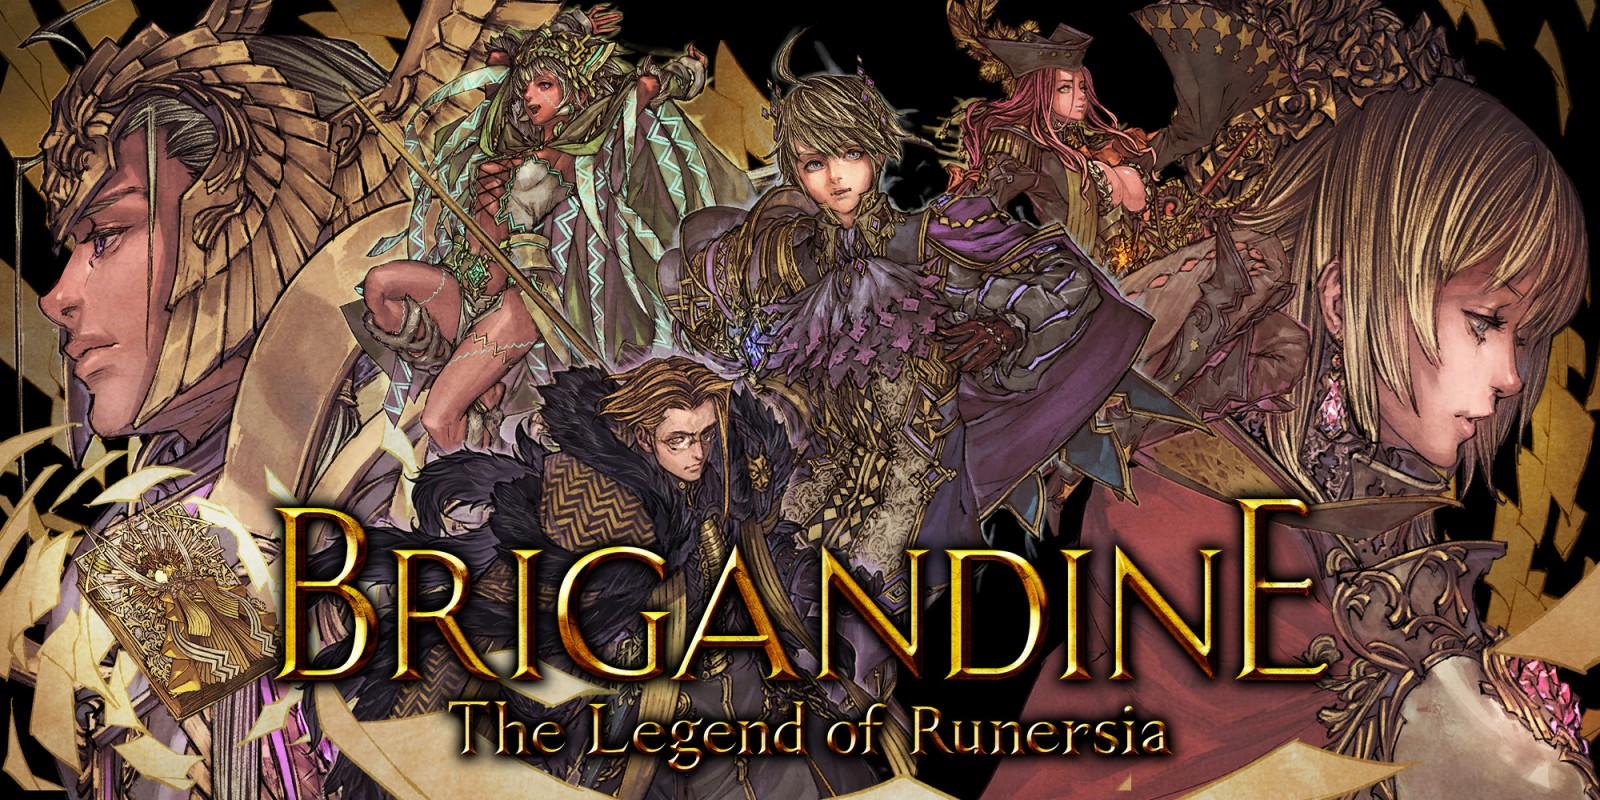 BRIGANDINE The Legend of Runersia